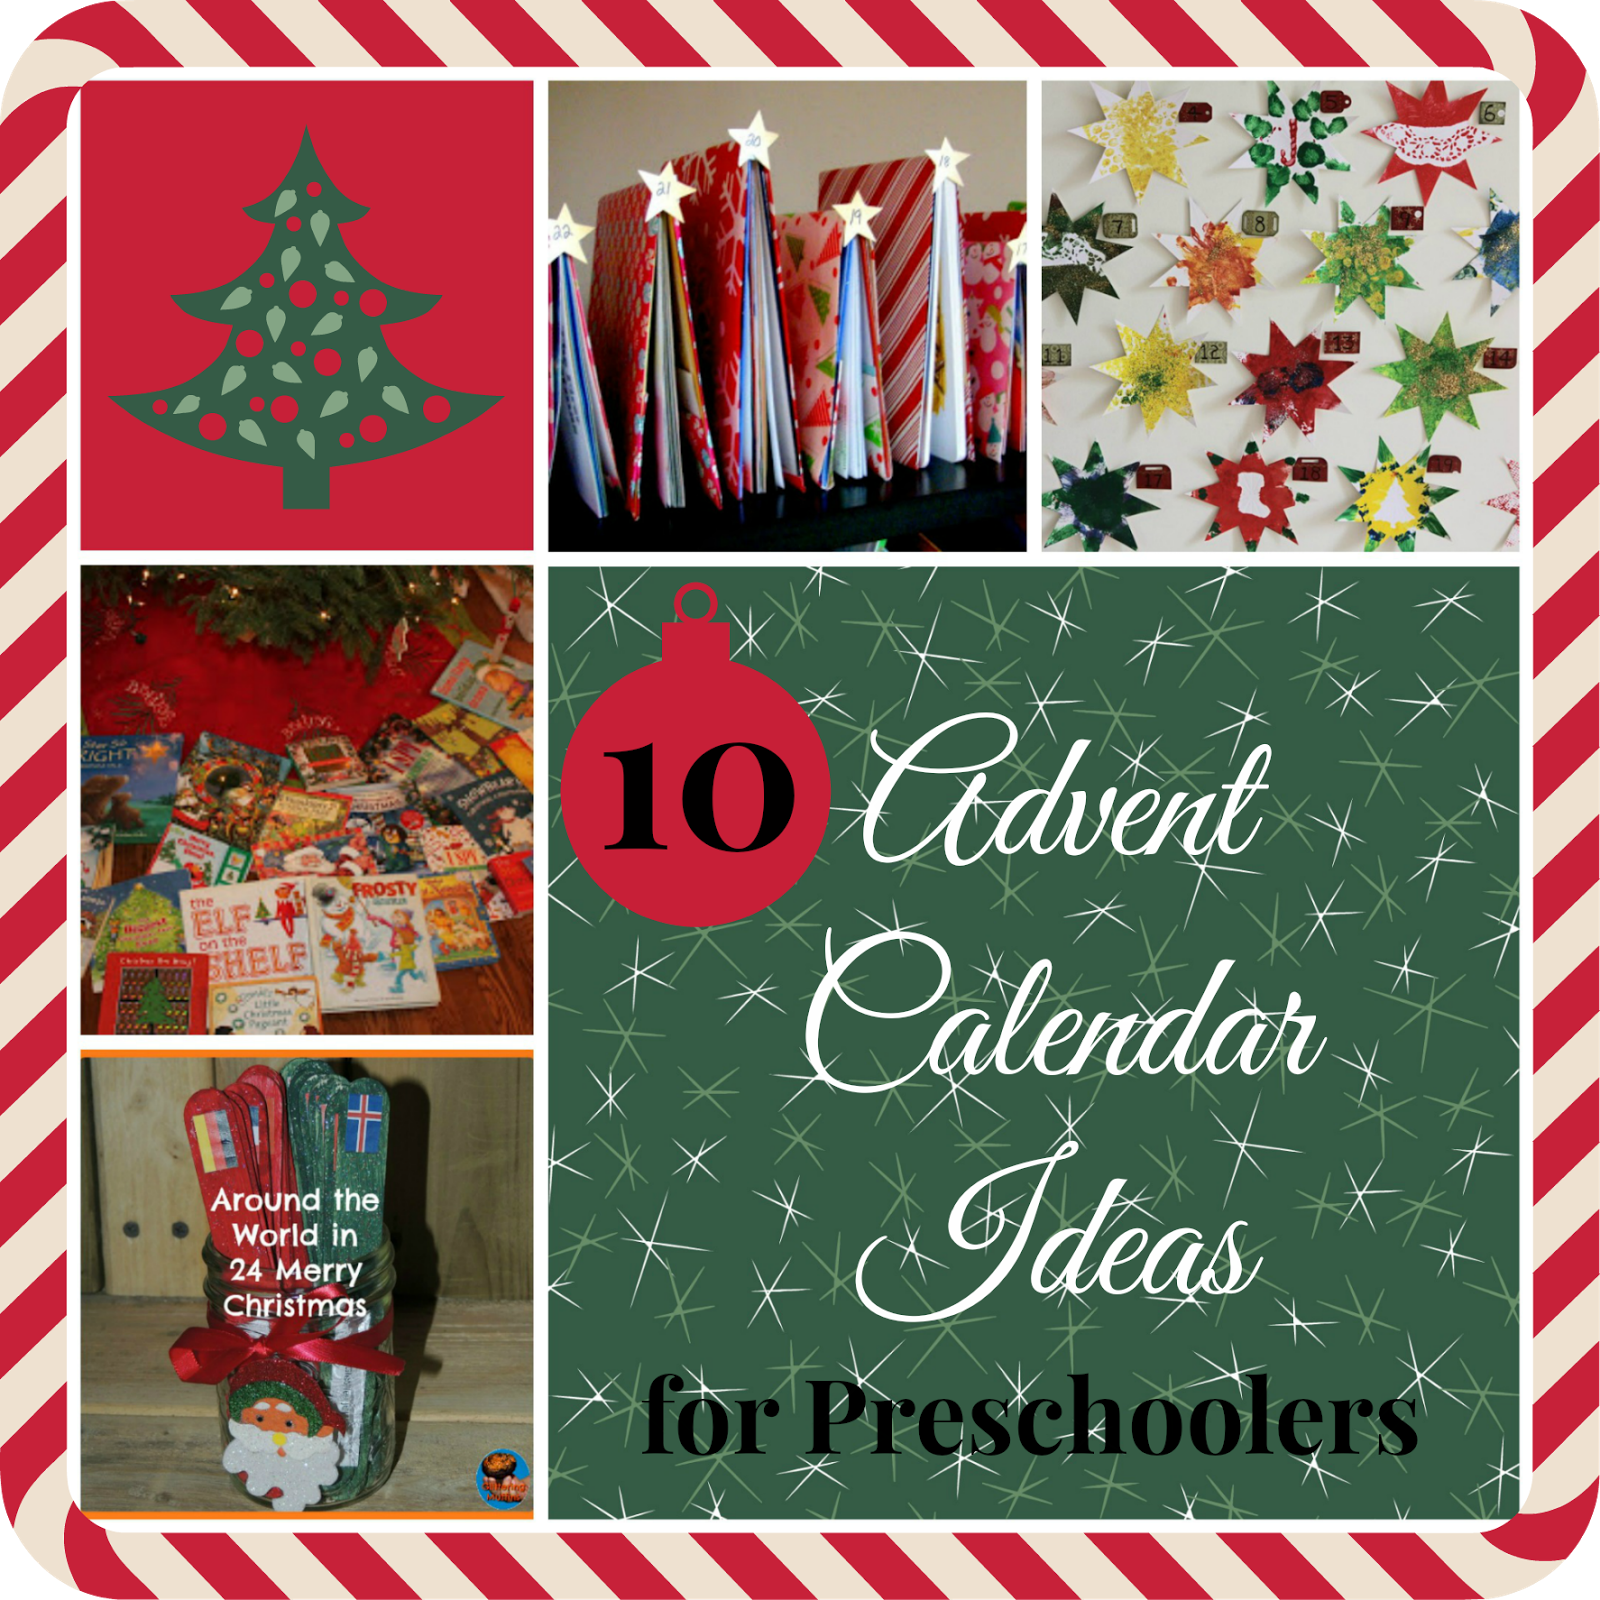 Christmas Calendar Ideas Preschool : Mama pea pod christmas advent calendar ideas for